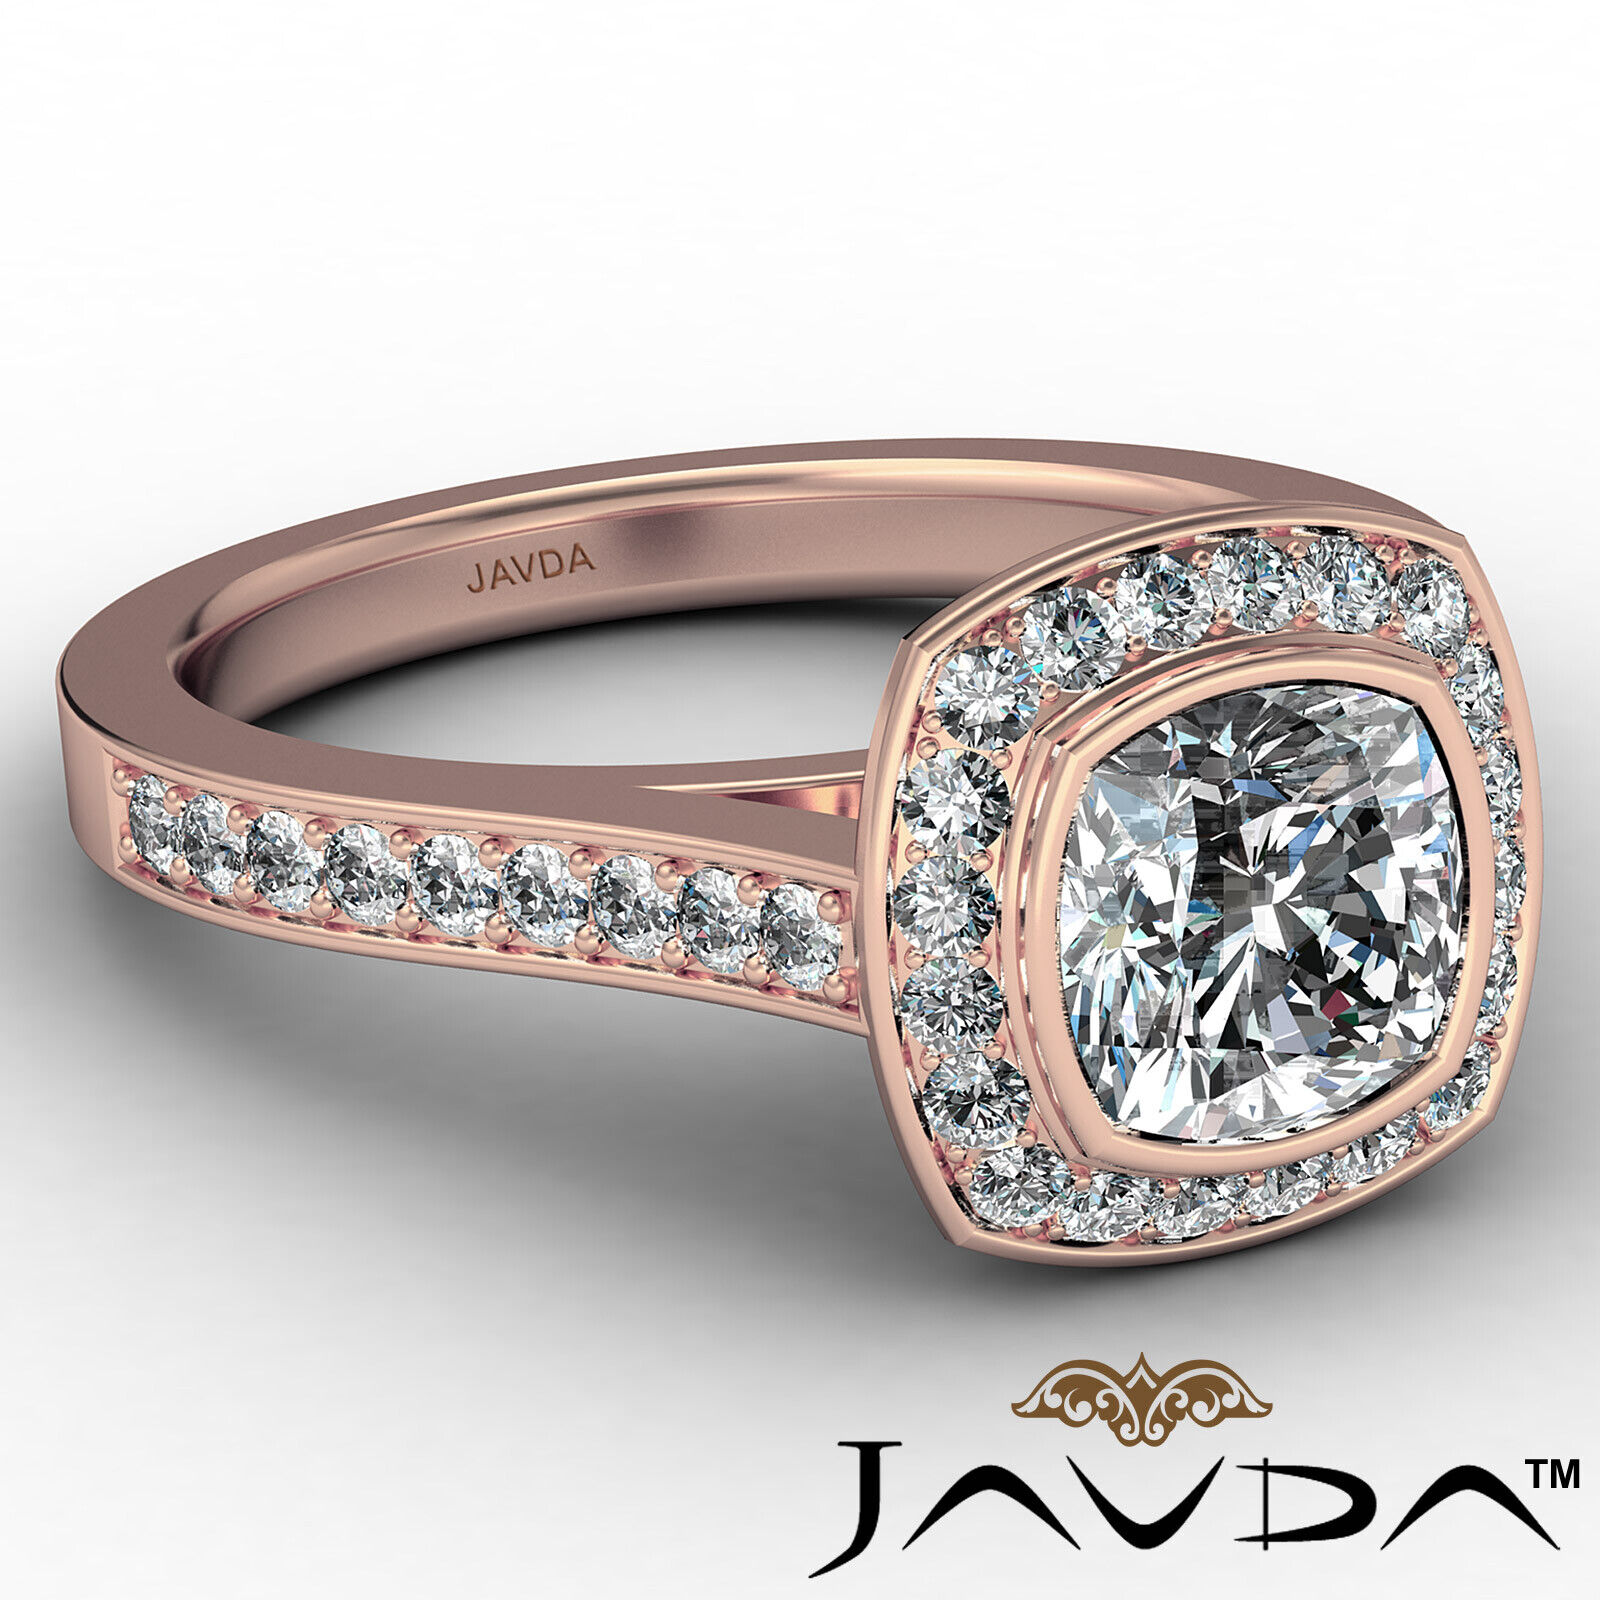 Micro Halo Cushion Diamond Engagement Ring GIA H Color & VS1 clarity 1.4 ctw 8